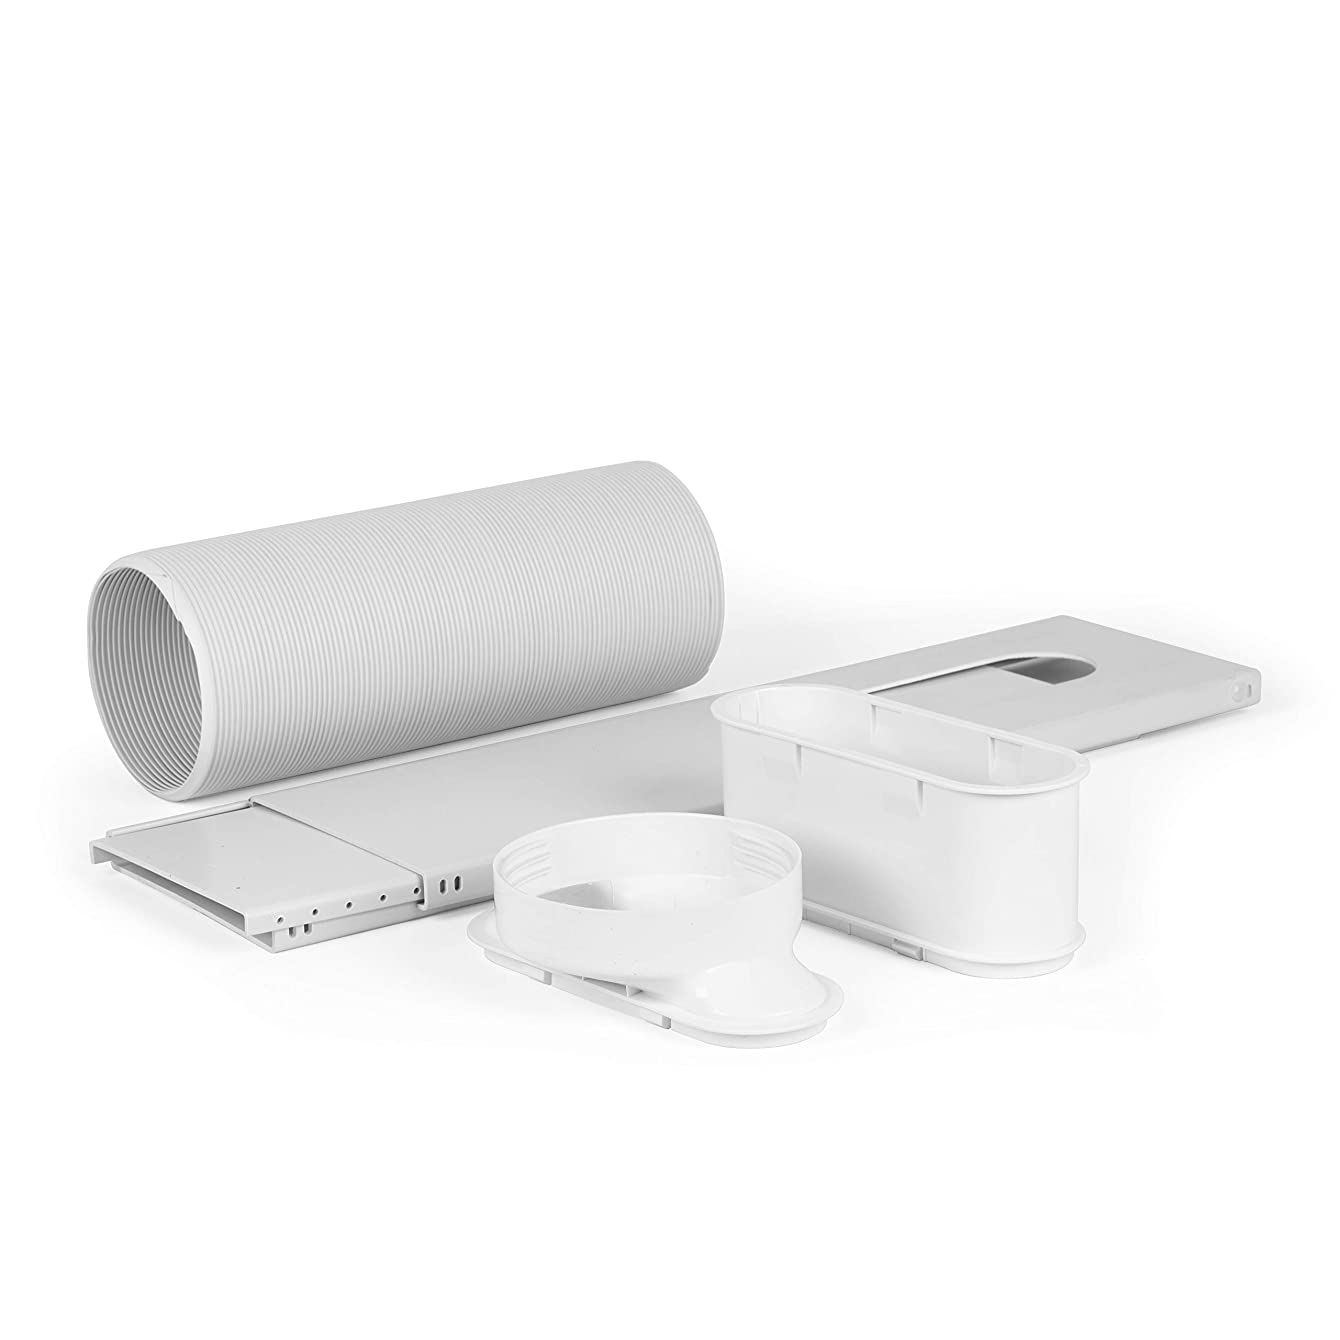 Portable Air Conditioner Accessories (Window Kit Accessory), ANYAIR